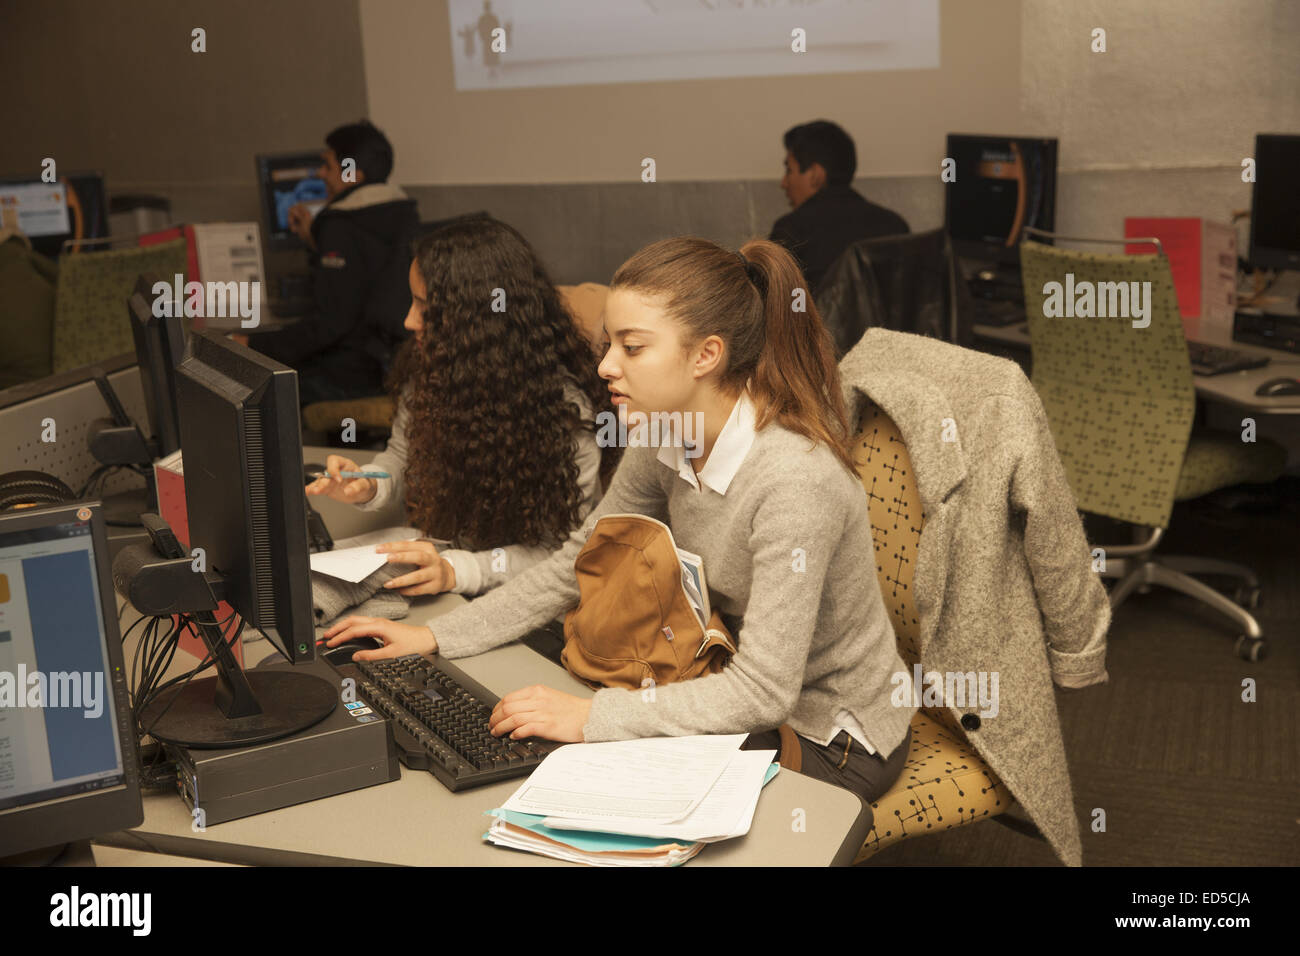 Expanded Horizons college prep lab sponsored by a community center in lower Manhattan, NYC. - Stock Image